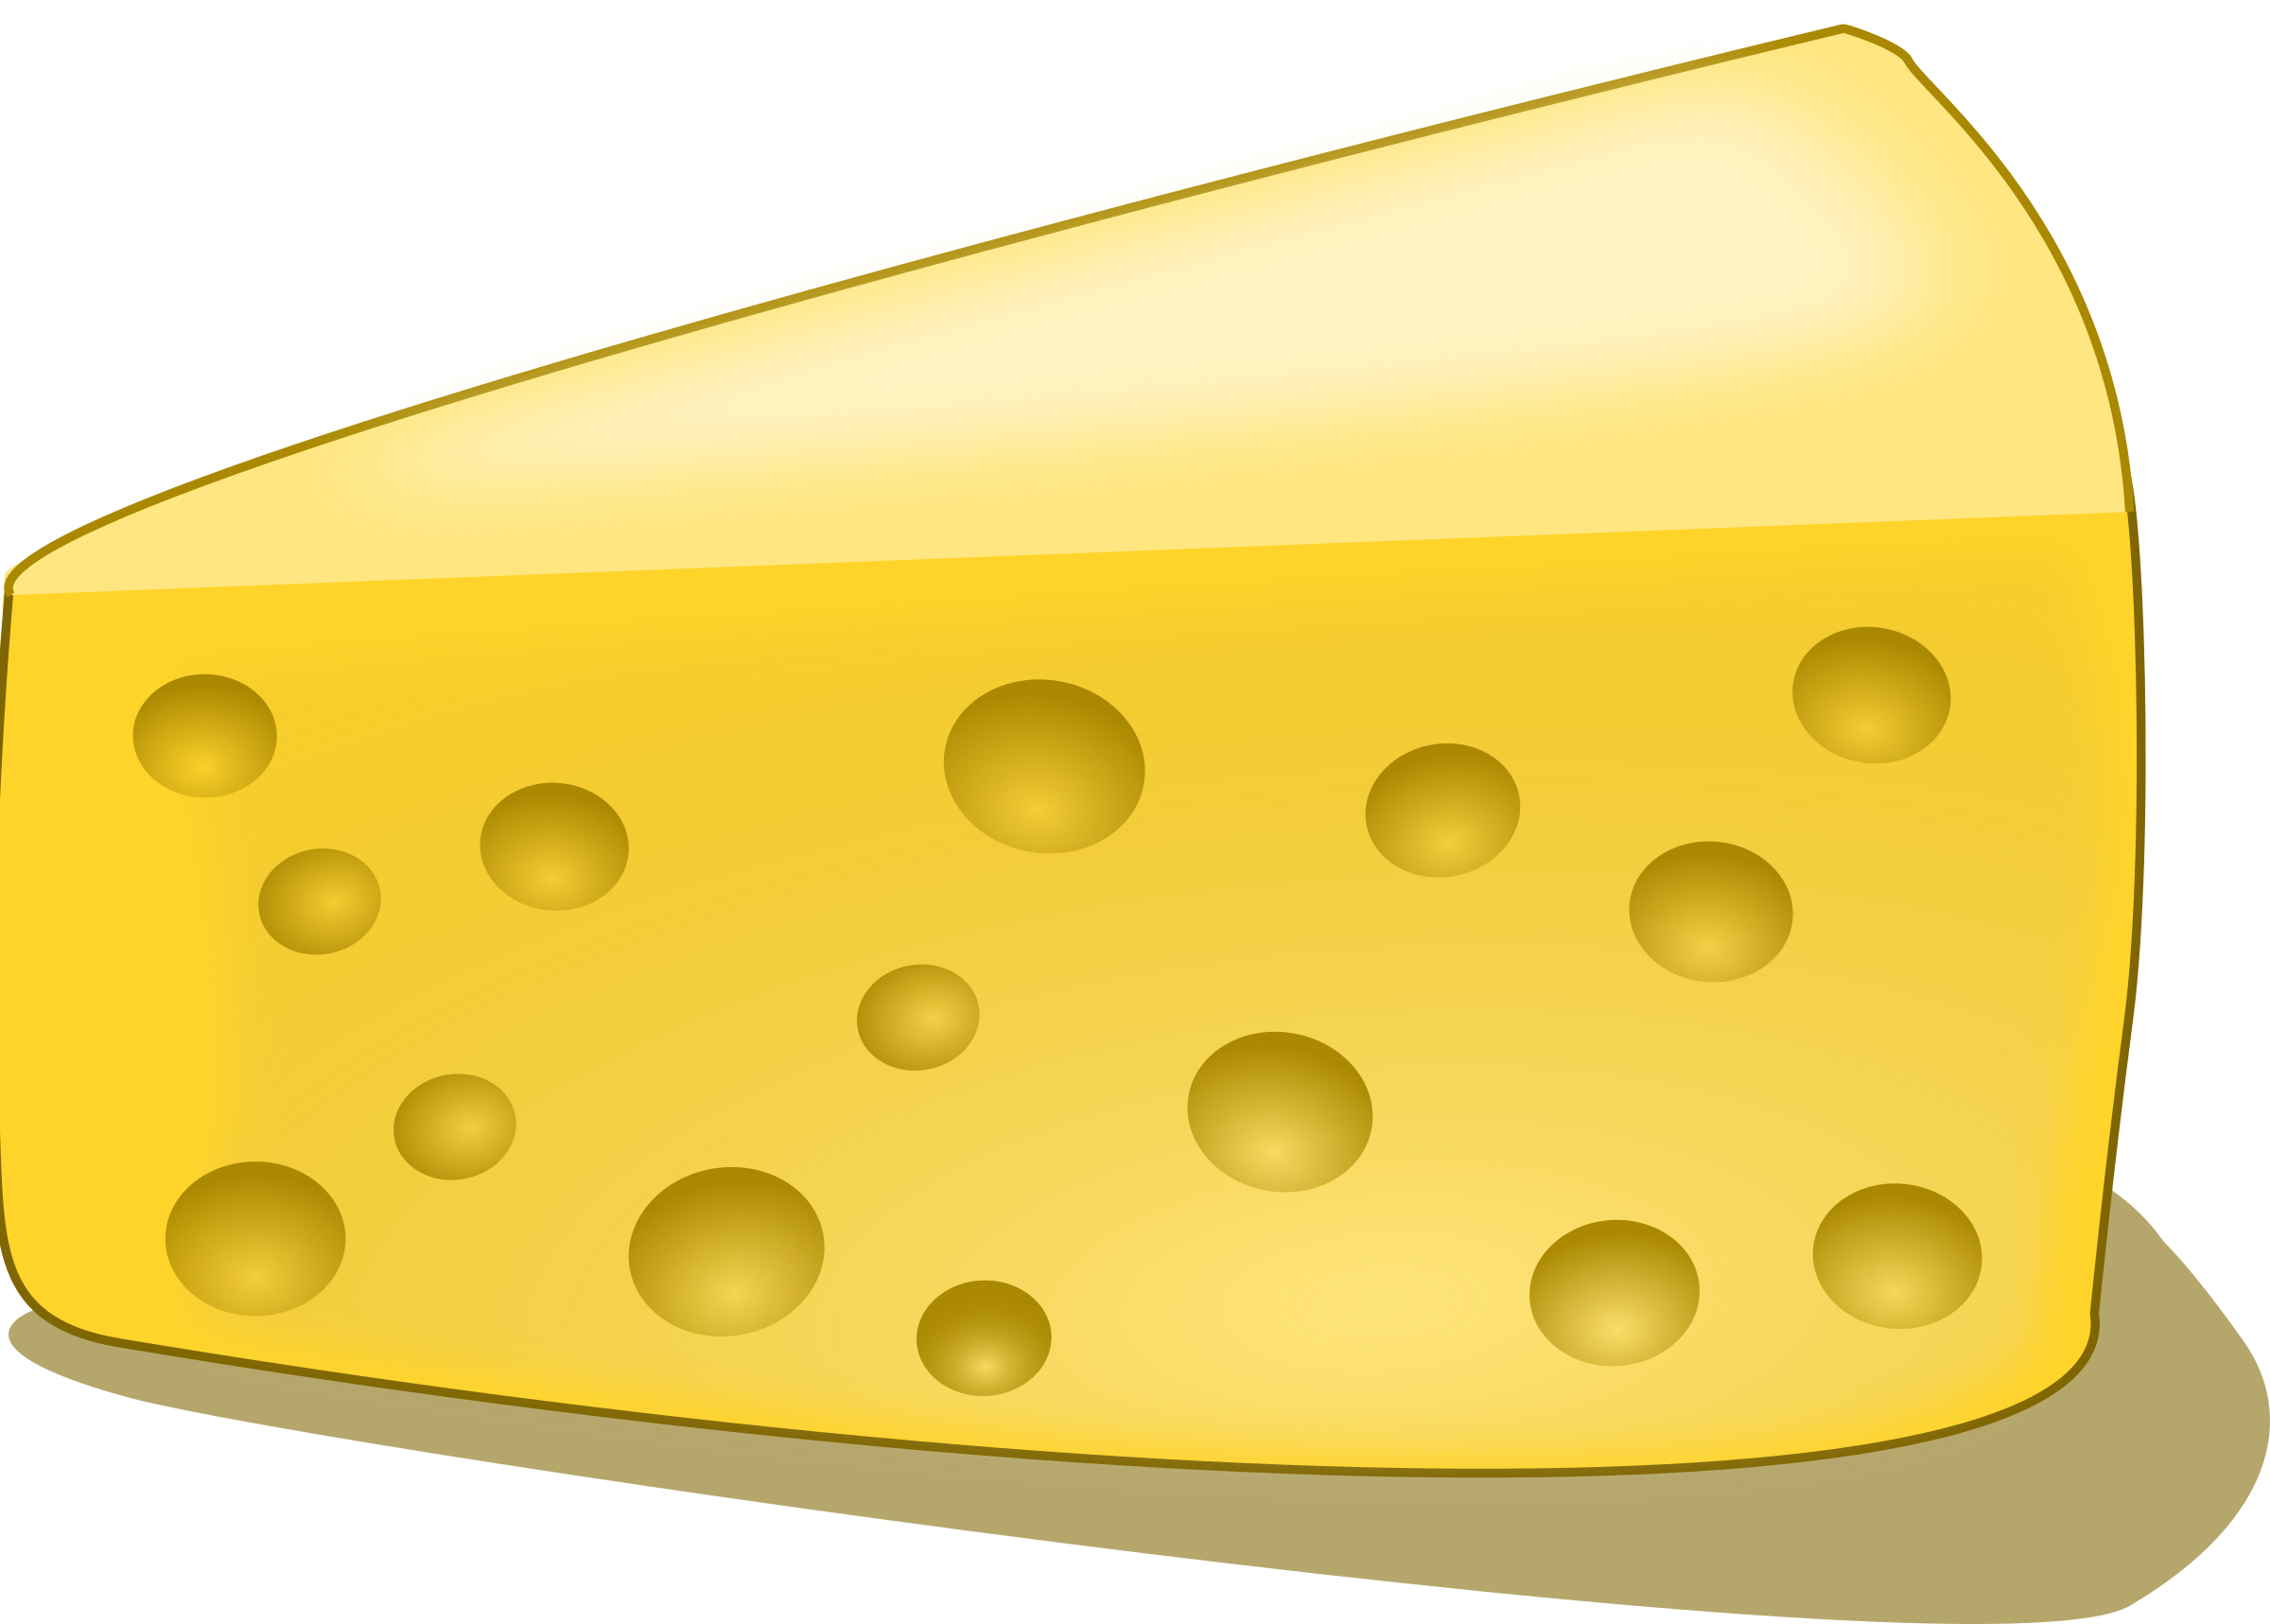 A Piece of Cheese Clip Art.